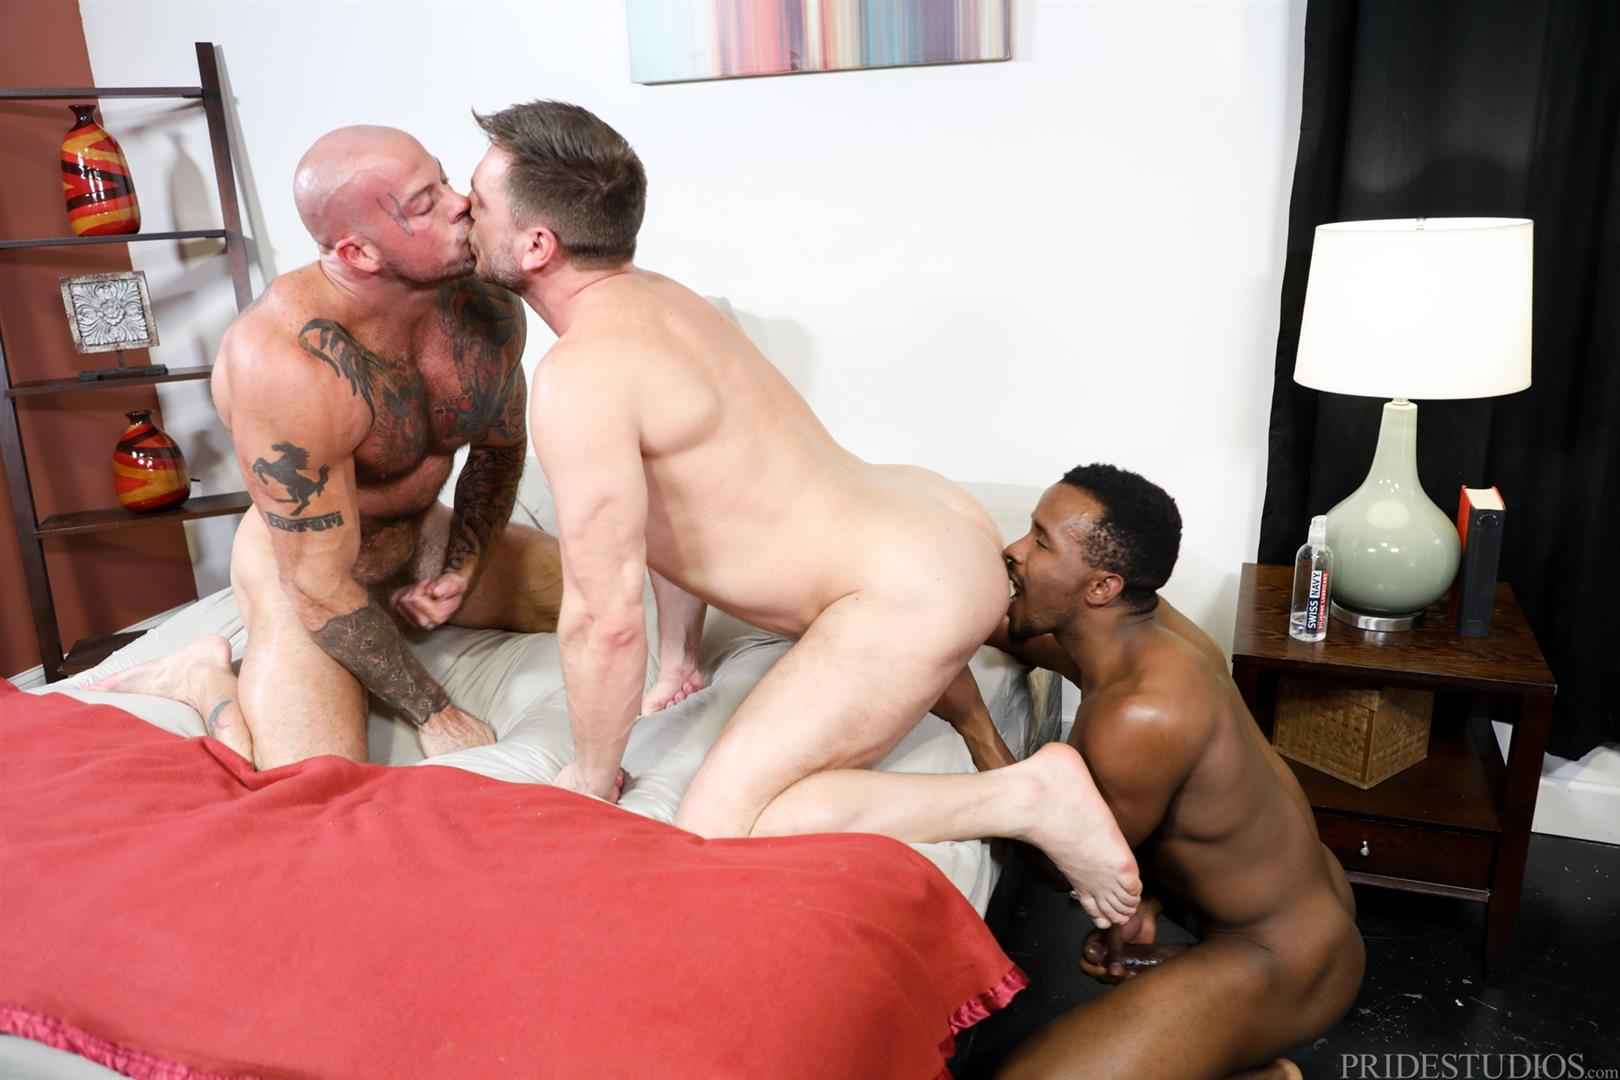 Extra-Big-Dicks-Sean-Duran-and-Hans-Berlin-and-Pheonix-Fellington-Interracial-Bareback-09 Muscle Daddies Sean Duran and Hans Berlin Share Pheonix Fellington's Big Black Cock